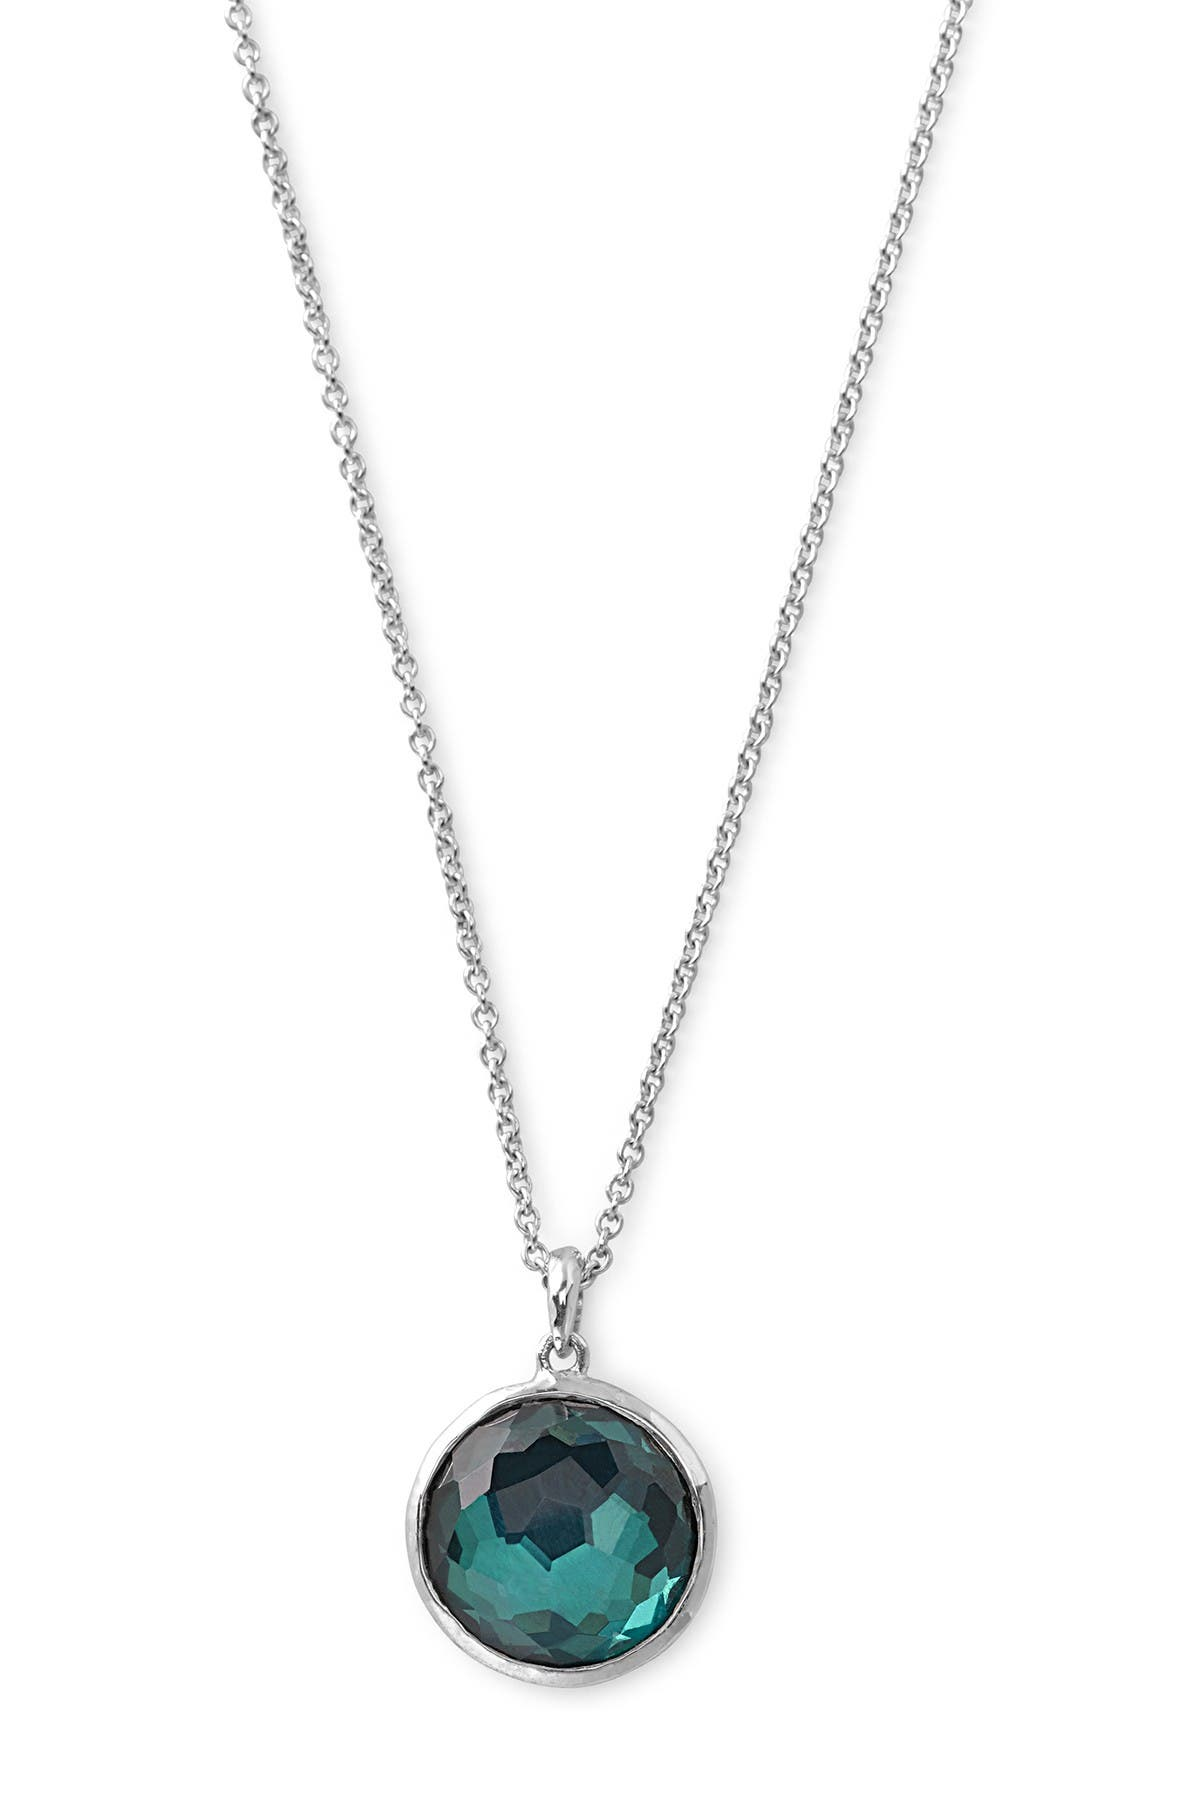 Image of Ippolita Wonderland Sterling Silver Round Pendant Necklace